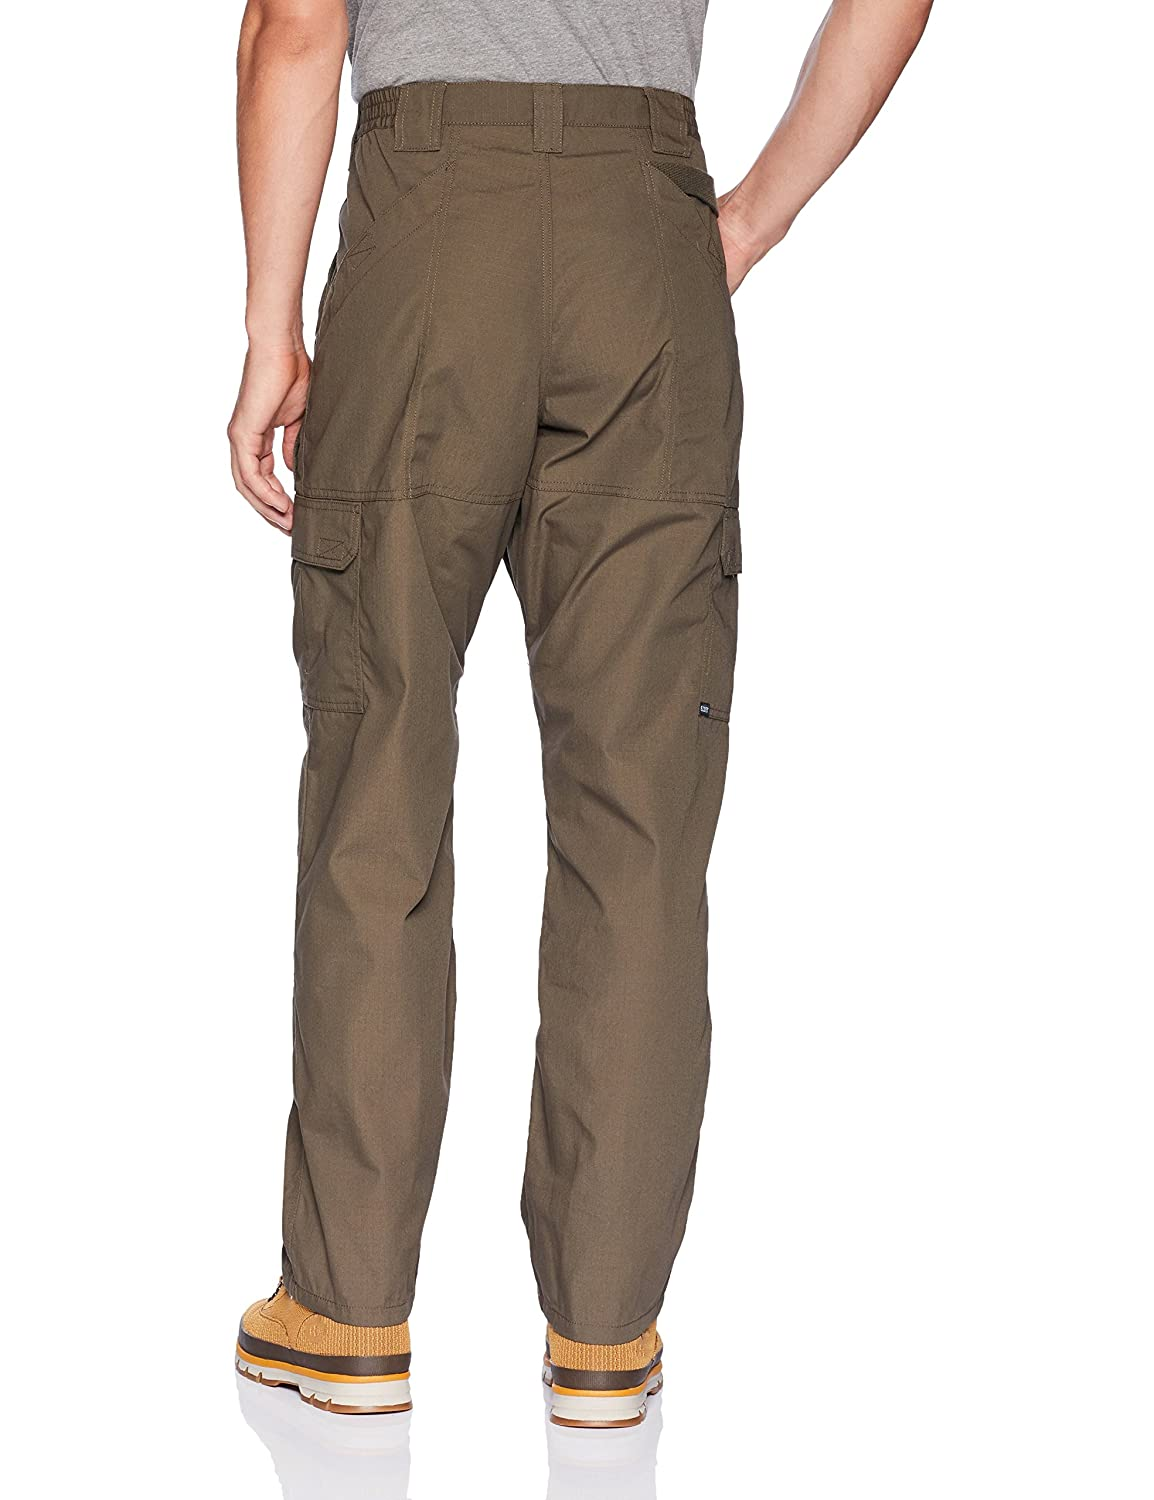 dfa2f34b Amazon.com: 5.11 Men's Taclite Pro Tactical Pants with Cargo Pockets, Style  74273: Clothing